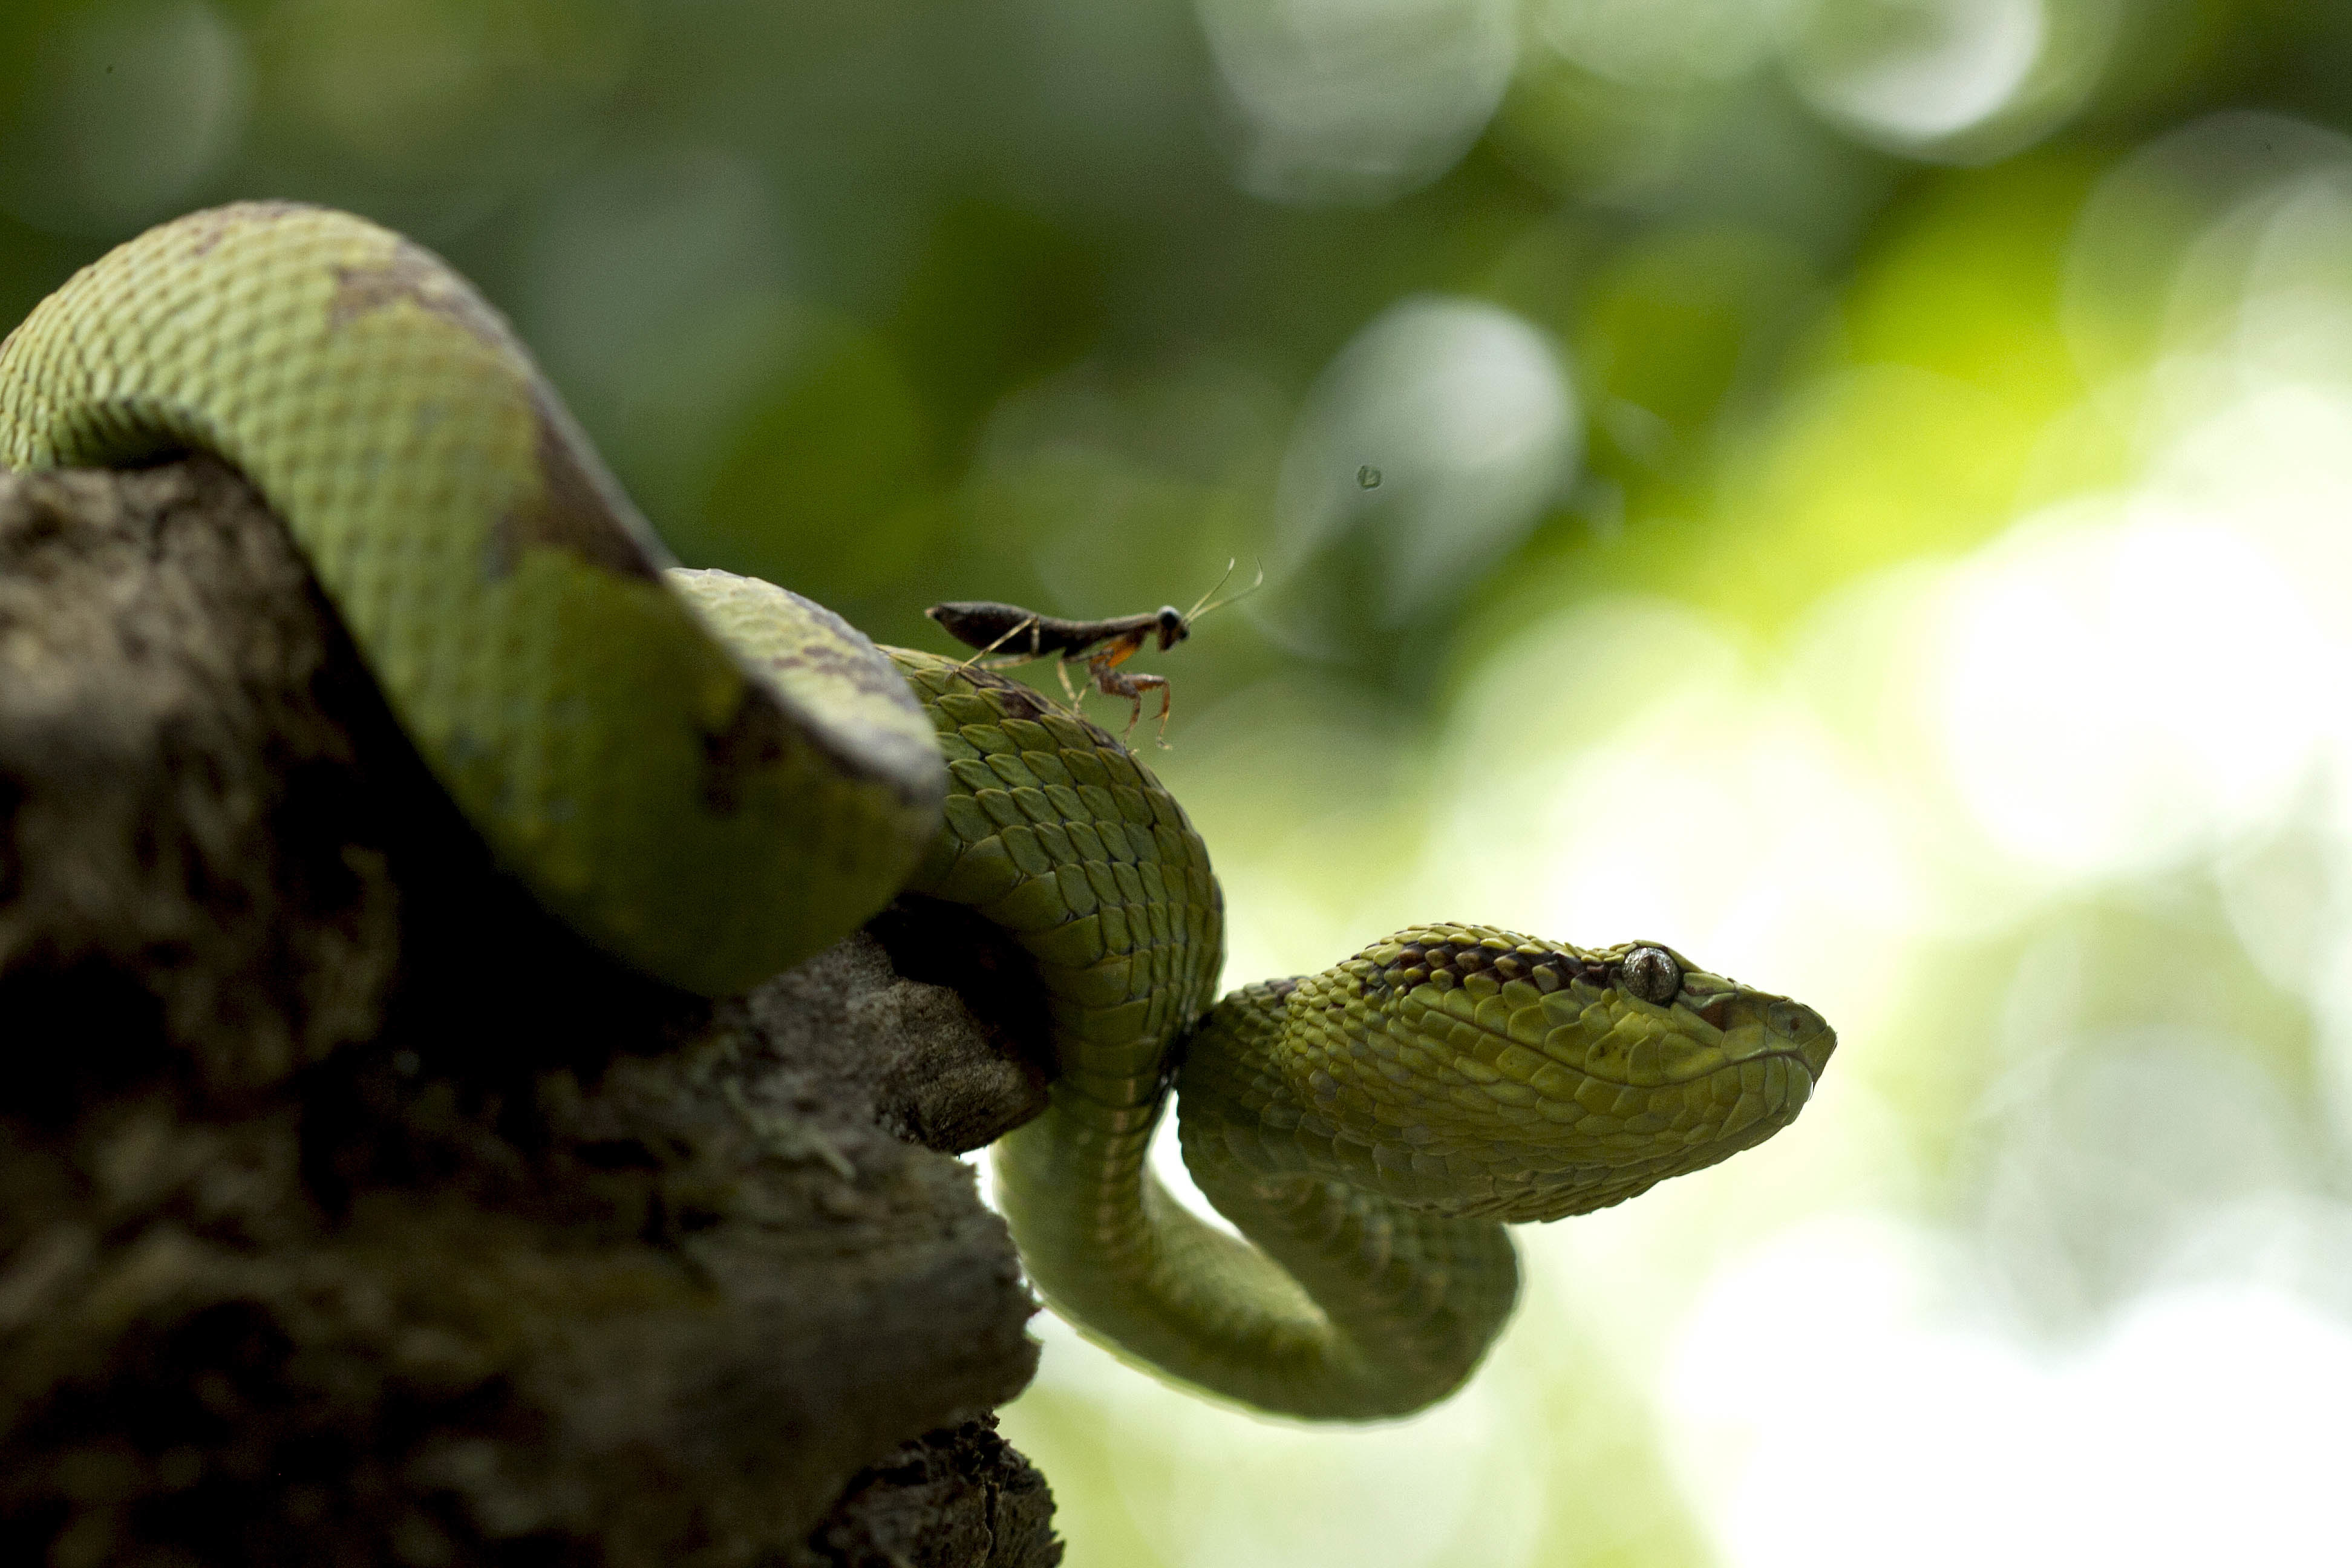 """Nirmal has a soft spot for snakes, especially the Malabar pit vipers. He has been studying the species for many years in the Mhadei Wildlife Sanctuary in Goa, and conducts pit viper expeditions to train amateur herpetologists in understanding the snake and its habitat.  Malabar Pit vipers have a well-defined home range, and are known to hang out in the same spot for years, if left undisturbed. They particularly like being near water, ideally basking on a sunny rock. Nirmal photographed this female, and her praying mantis friend in Mhadei. """"Almost every day, we would see this praying mantis sitting on the snake,"""" he recalls. Photo: Nirmal Kulkarni"""